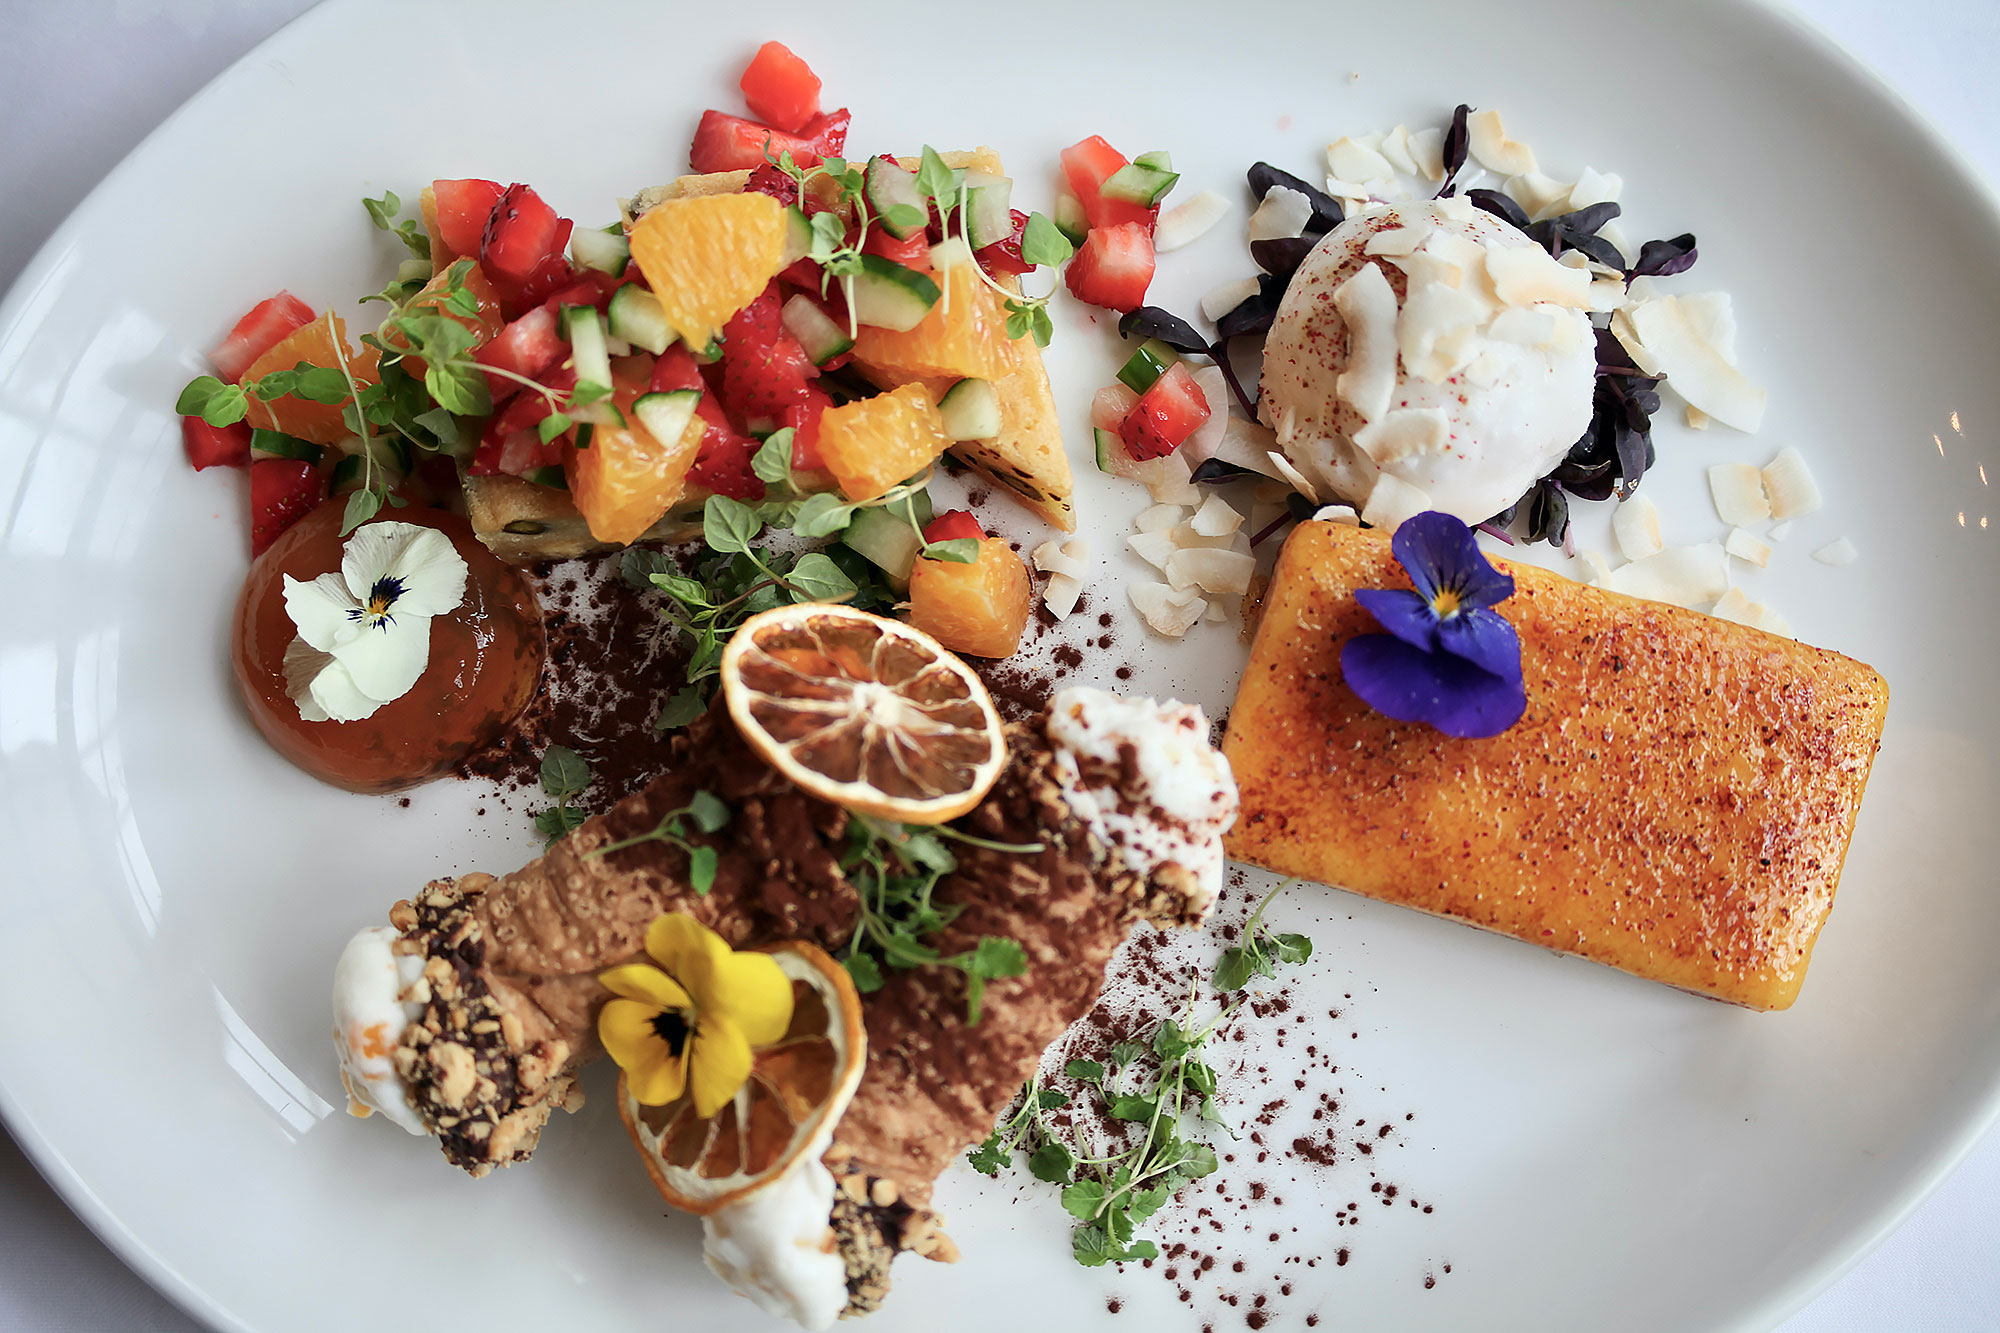 To finish: A sharing platter of course! 1. Sicilian cannoli, ricotta, gianduja, candied lemon 2. White chocolate and pistachio brownie, Pimm's jelly strawberries, cucumber, orange, mint 3. Caramelized passion fruit tart, coconut sorbet, pink peppercorn, basil.